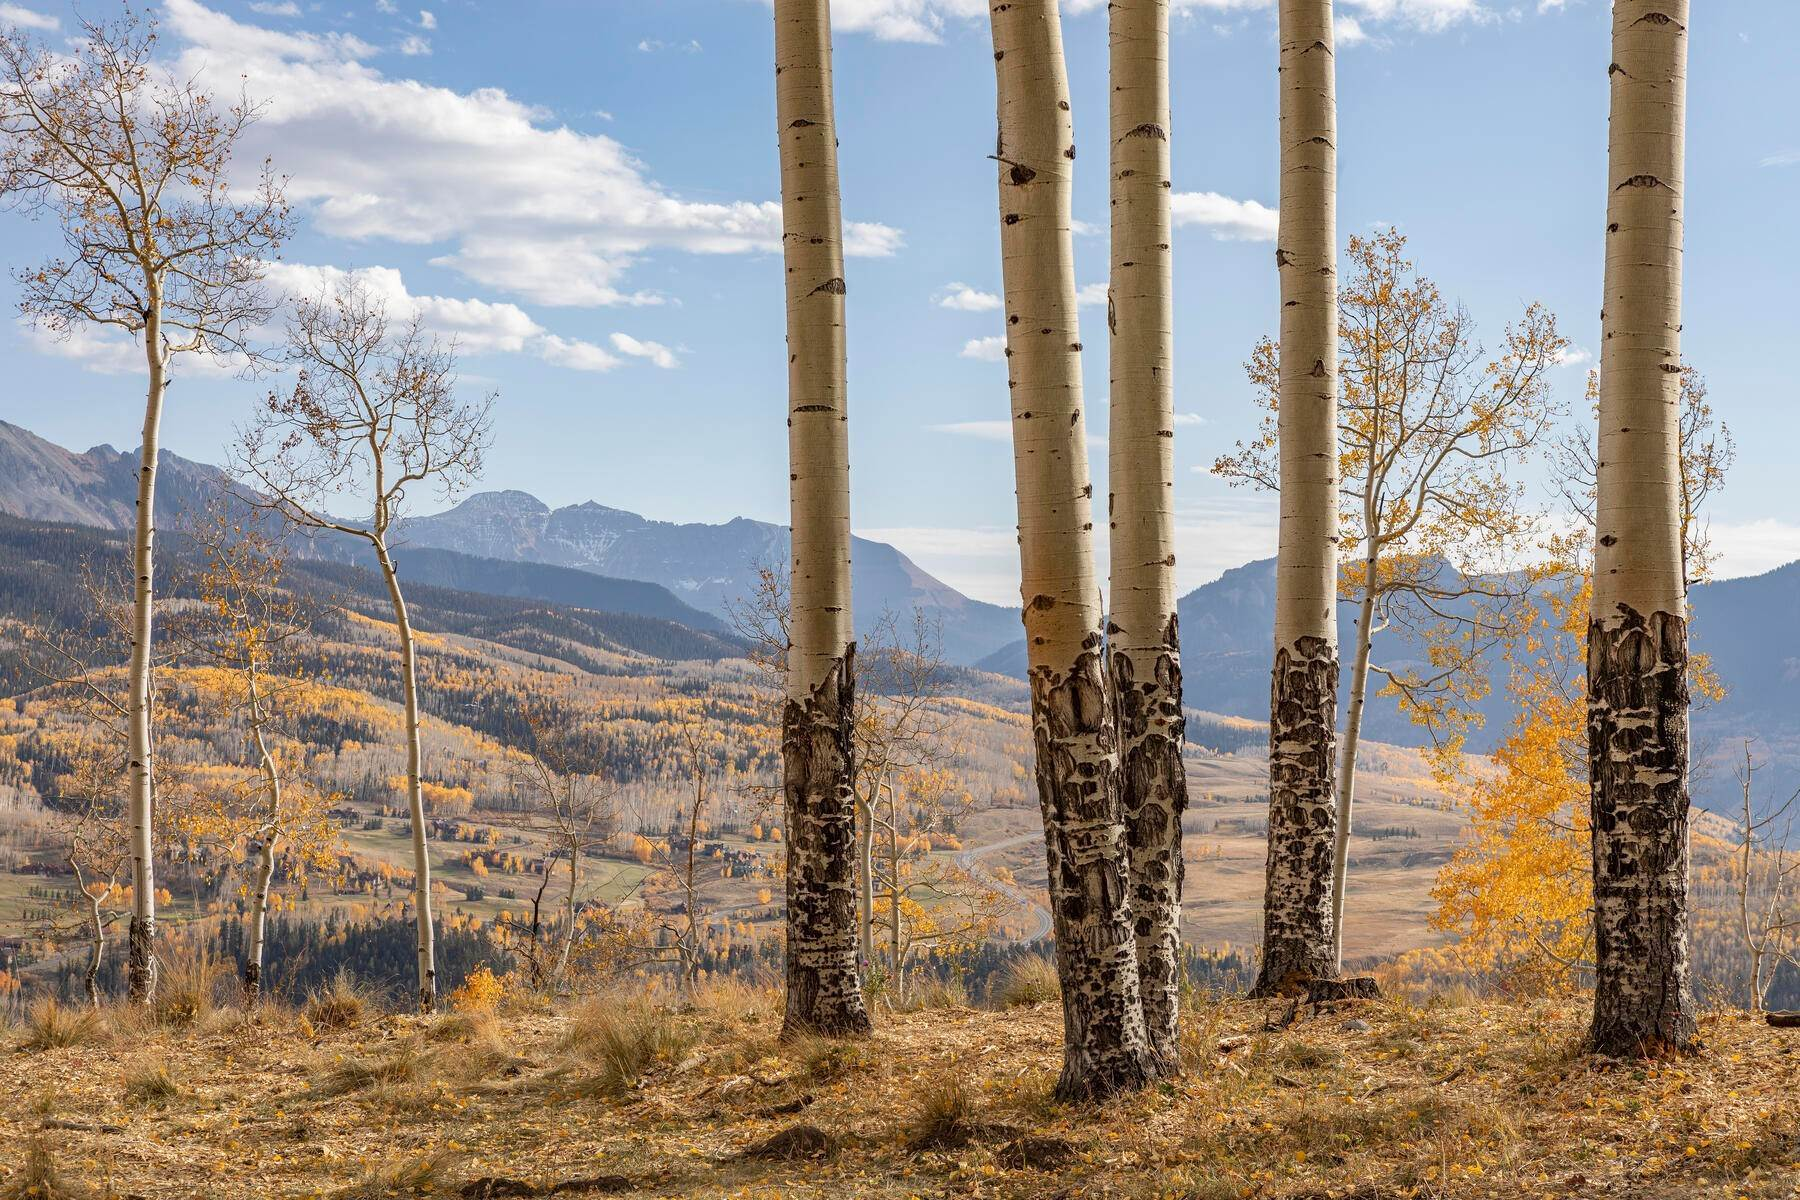 Land at TBD Basque Boulevard, Lot 113 & 114A Telluride, Colorado 81435 United States